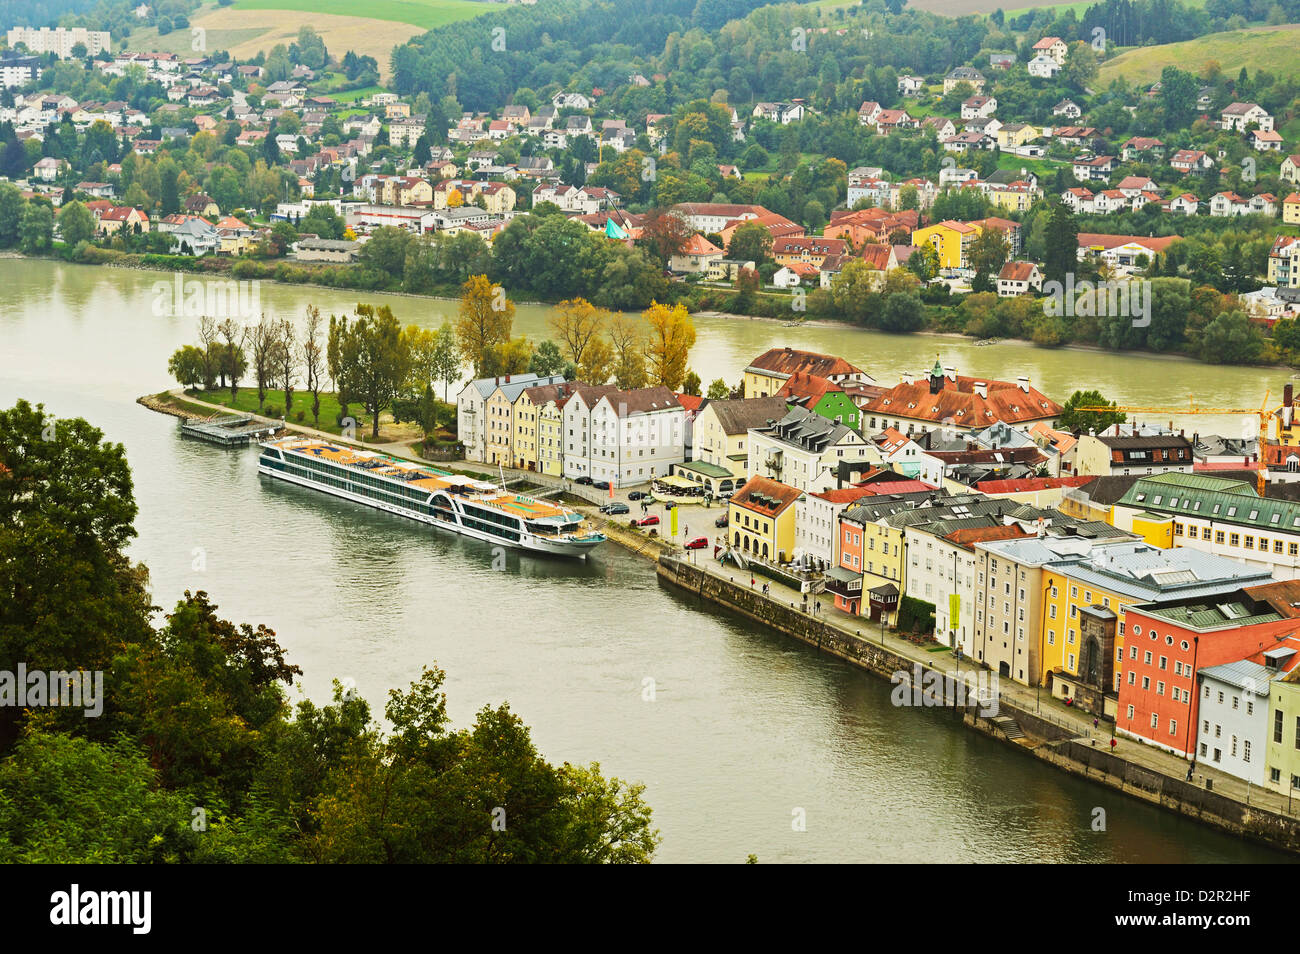 View of Passau with rivers Danube and Inn, Bavaria, Germany, Europe - Stock Image